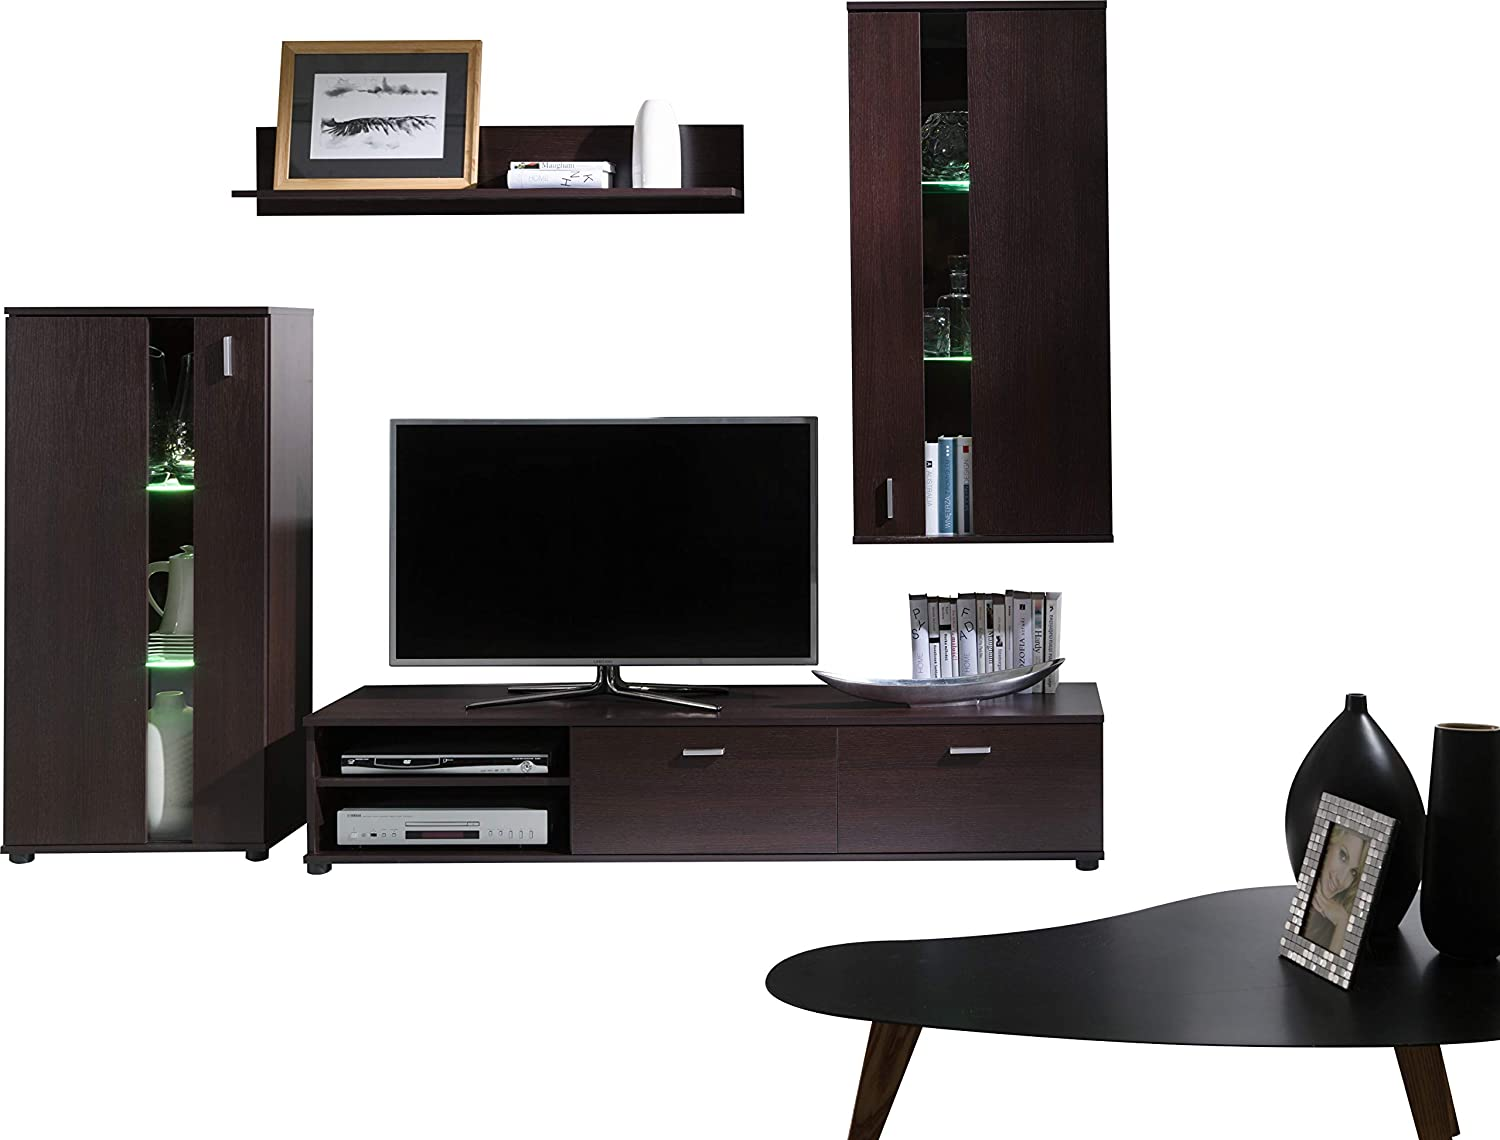 FurniturByJDM TV Wall Unit, TV Table Set, Living Room Set MIRA Large TV  Bench, Free Standing Cabinet Unit, Wall-mounted Shelve and Wall-mounted  Cabinet. (Milano): Amazon.co.uk: Kitchen & Home